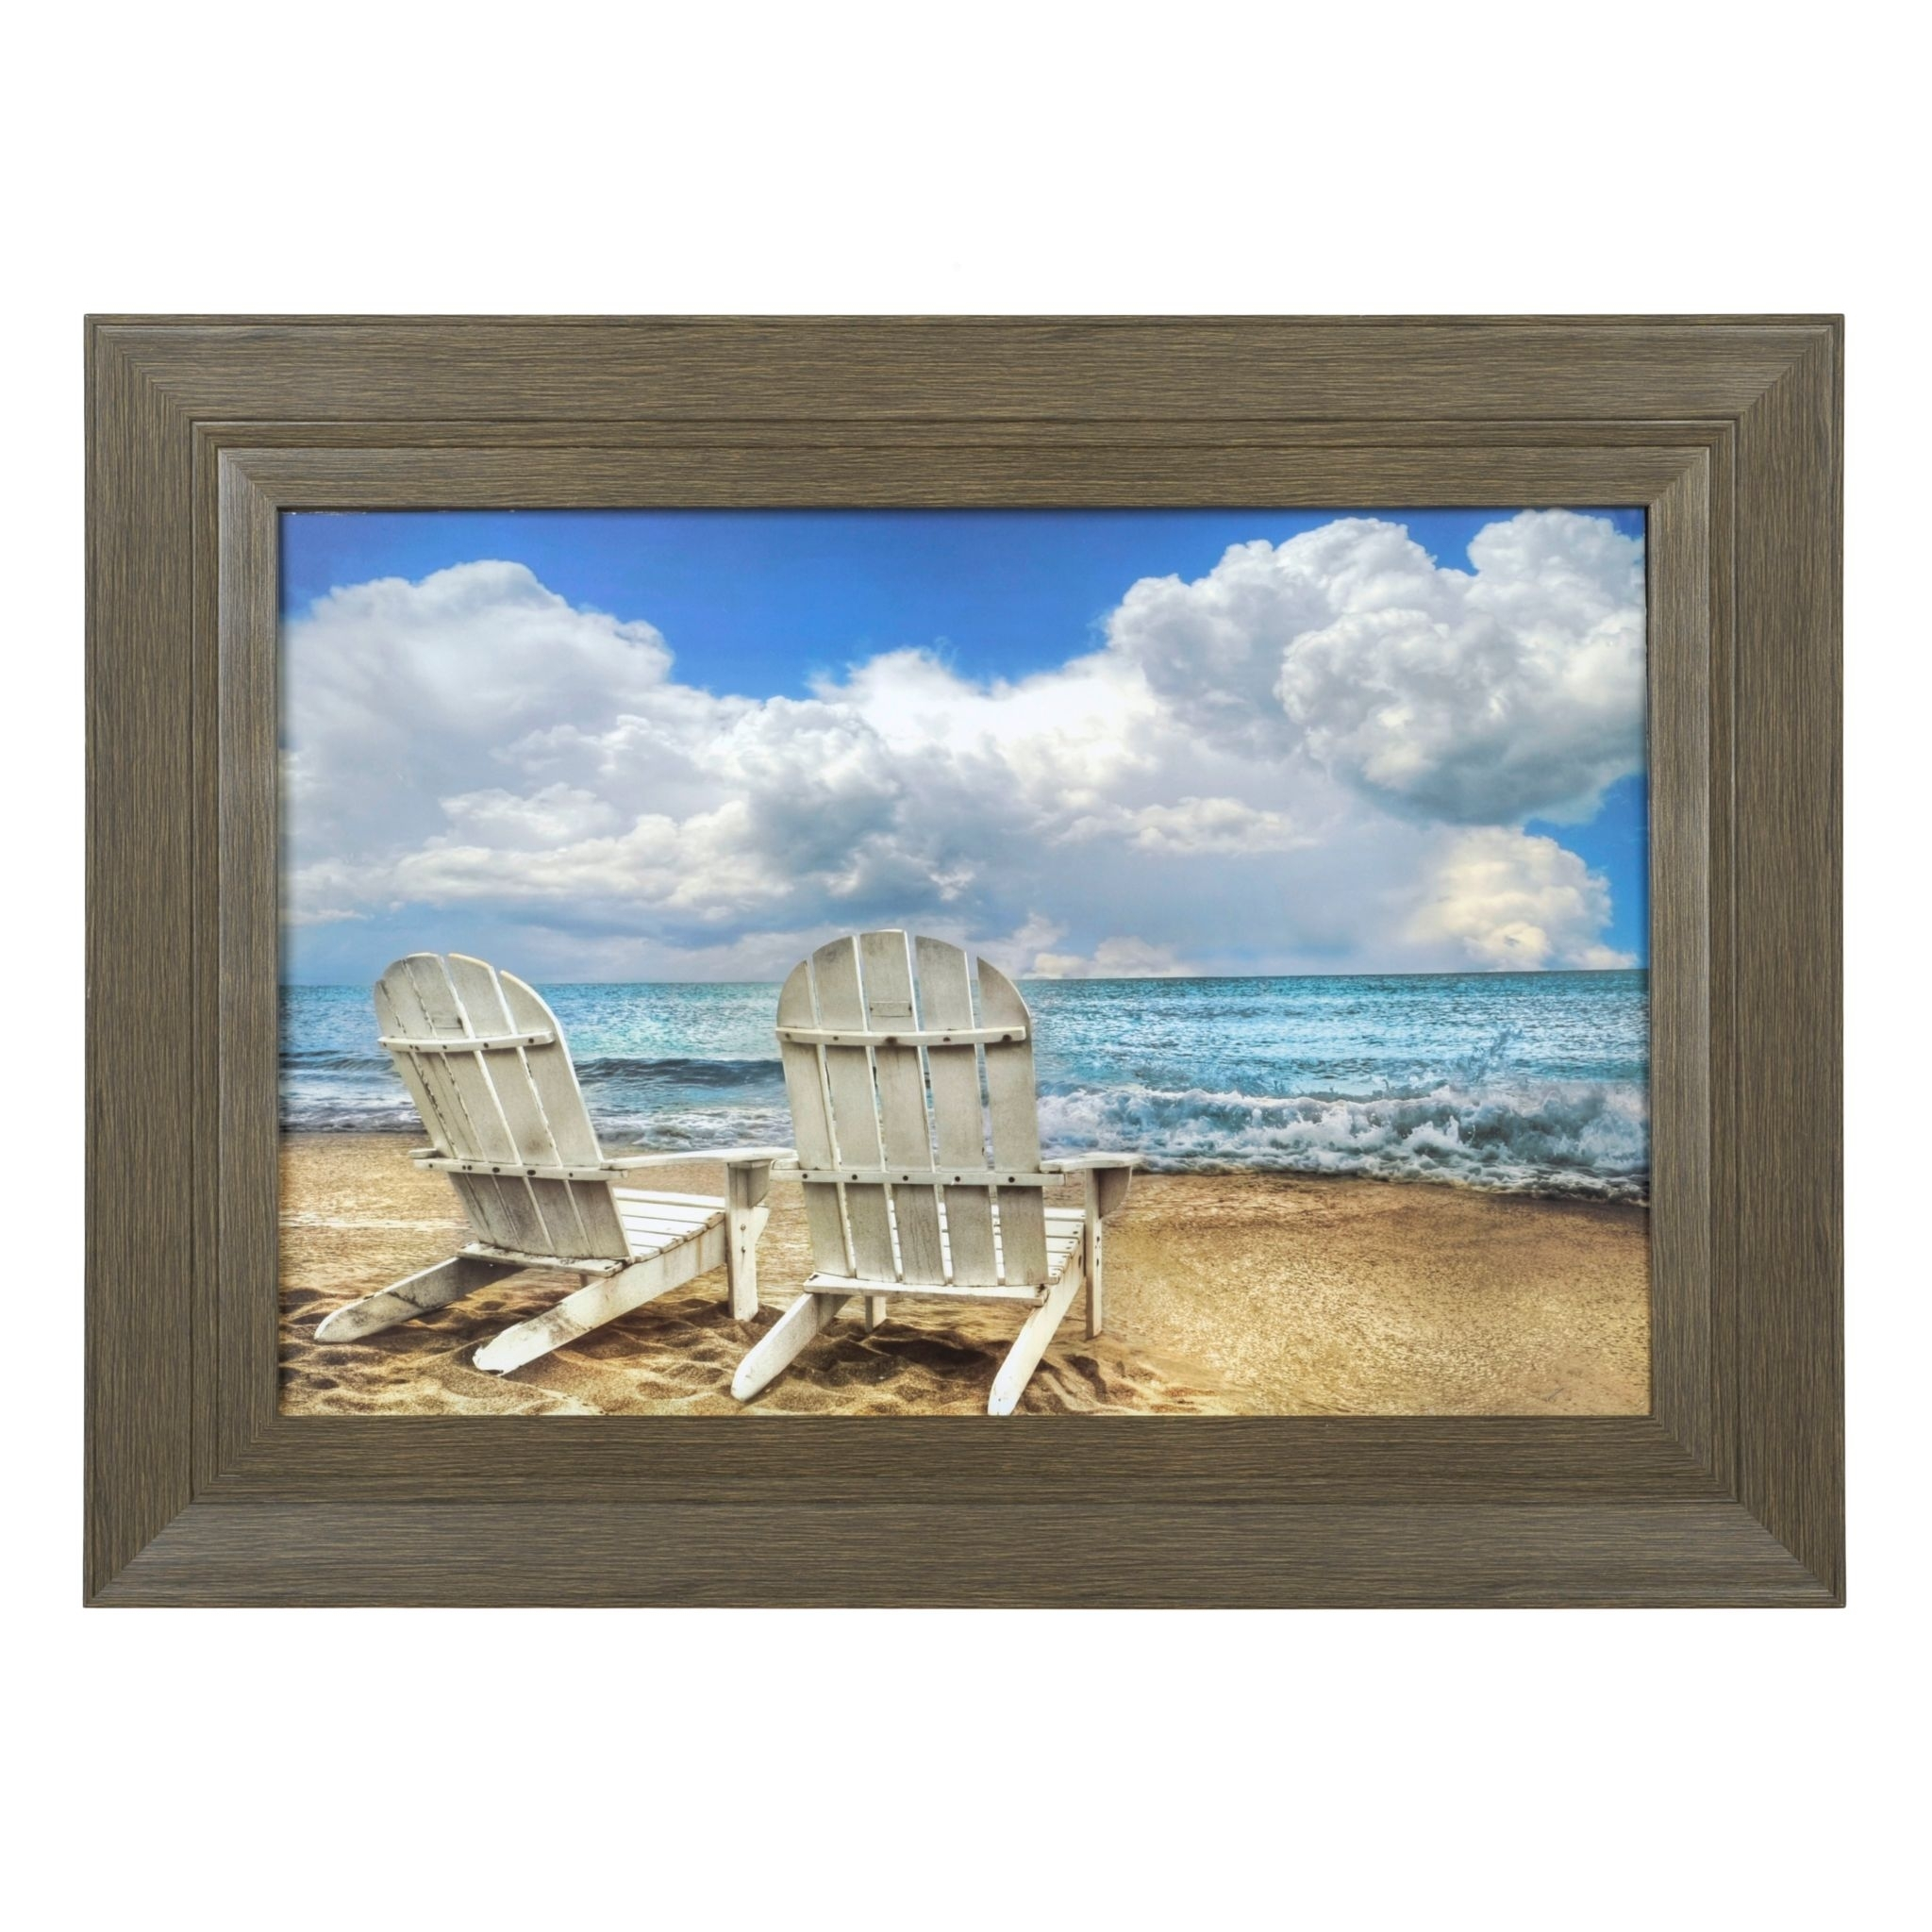 Beach Chairs Framed Art Print | Beach Chairs, Beach And Spaces In Current Framed Beach Art Prints (View 1 of 15)